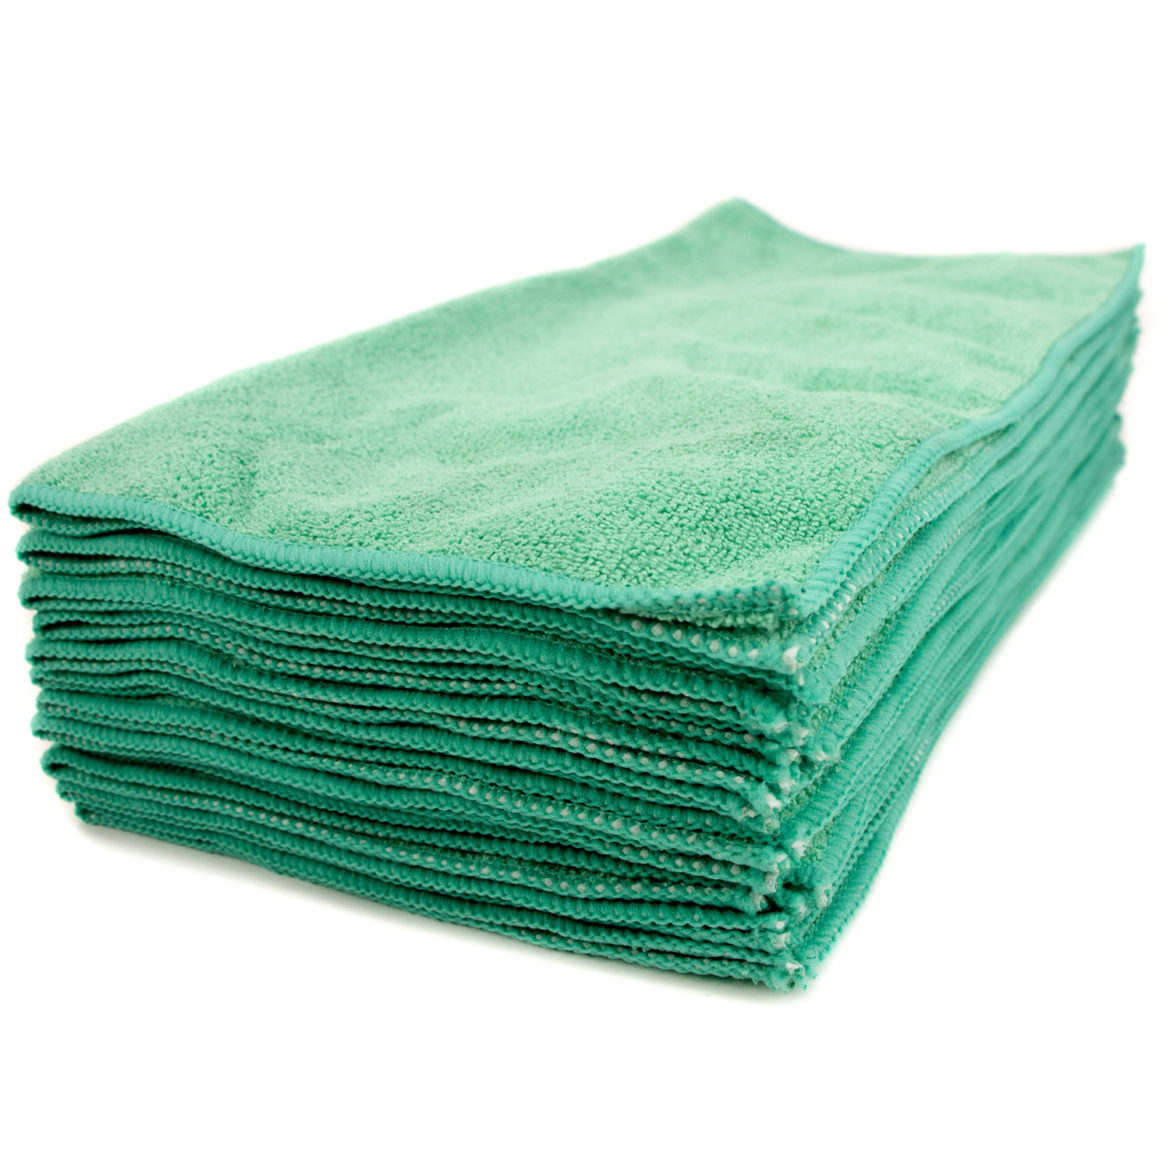 "Green Microfiber Cleaning Towel 16 x 16"", Package Of 12"